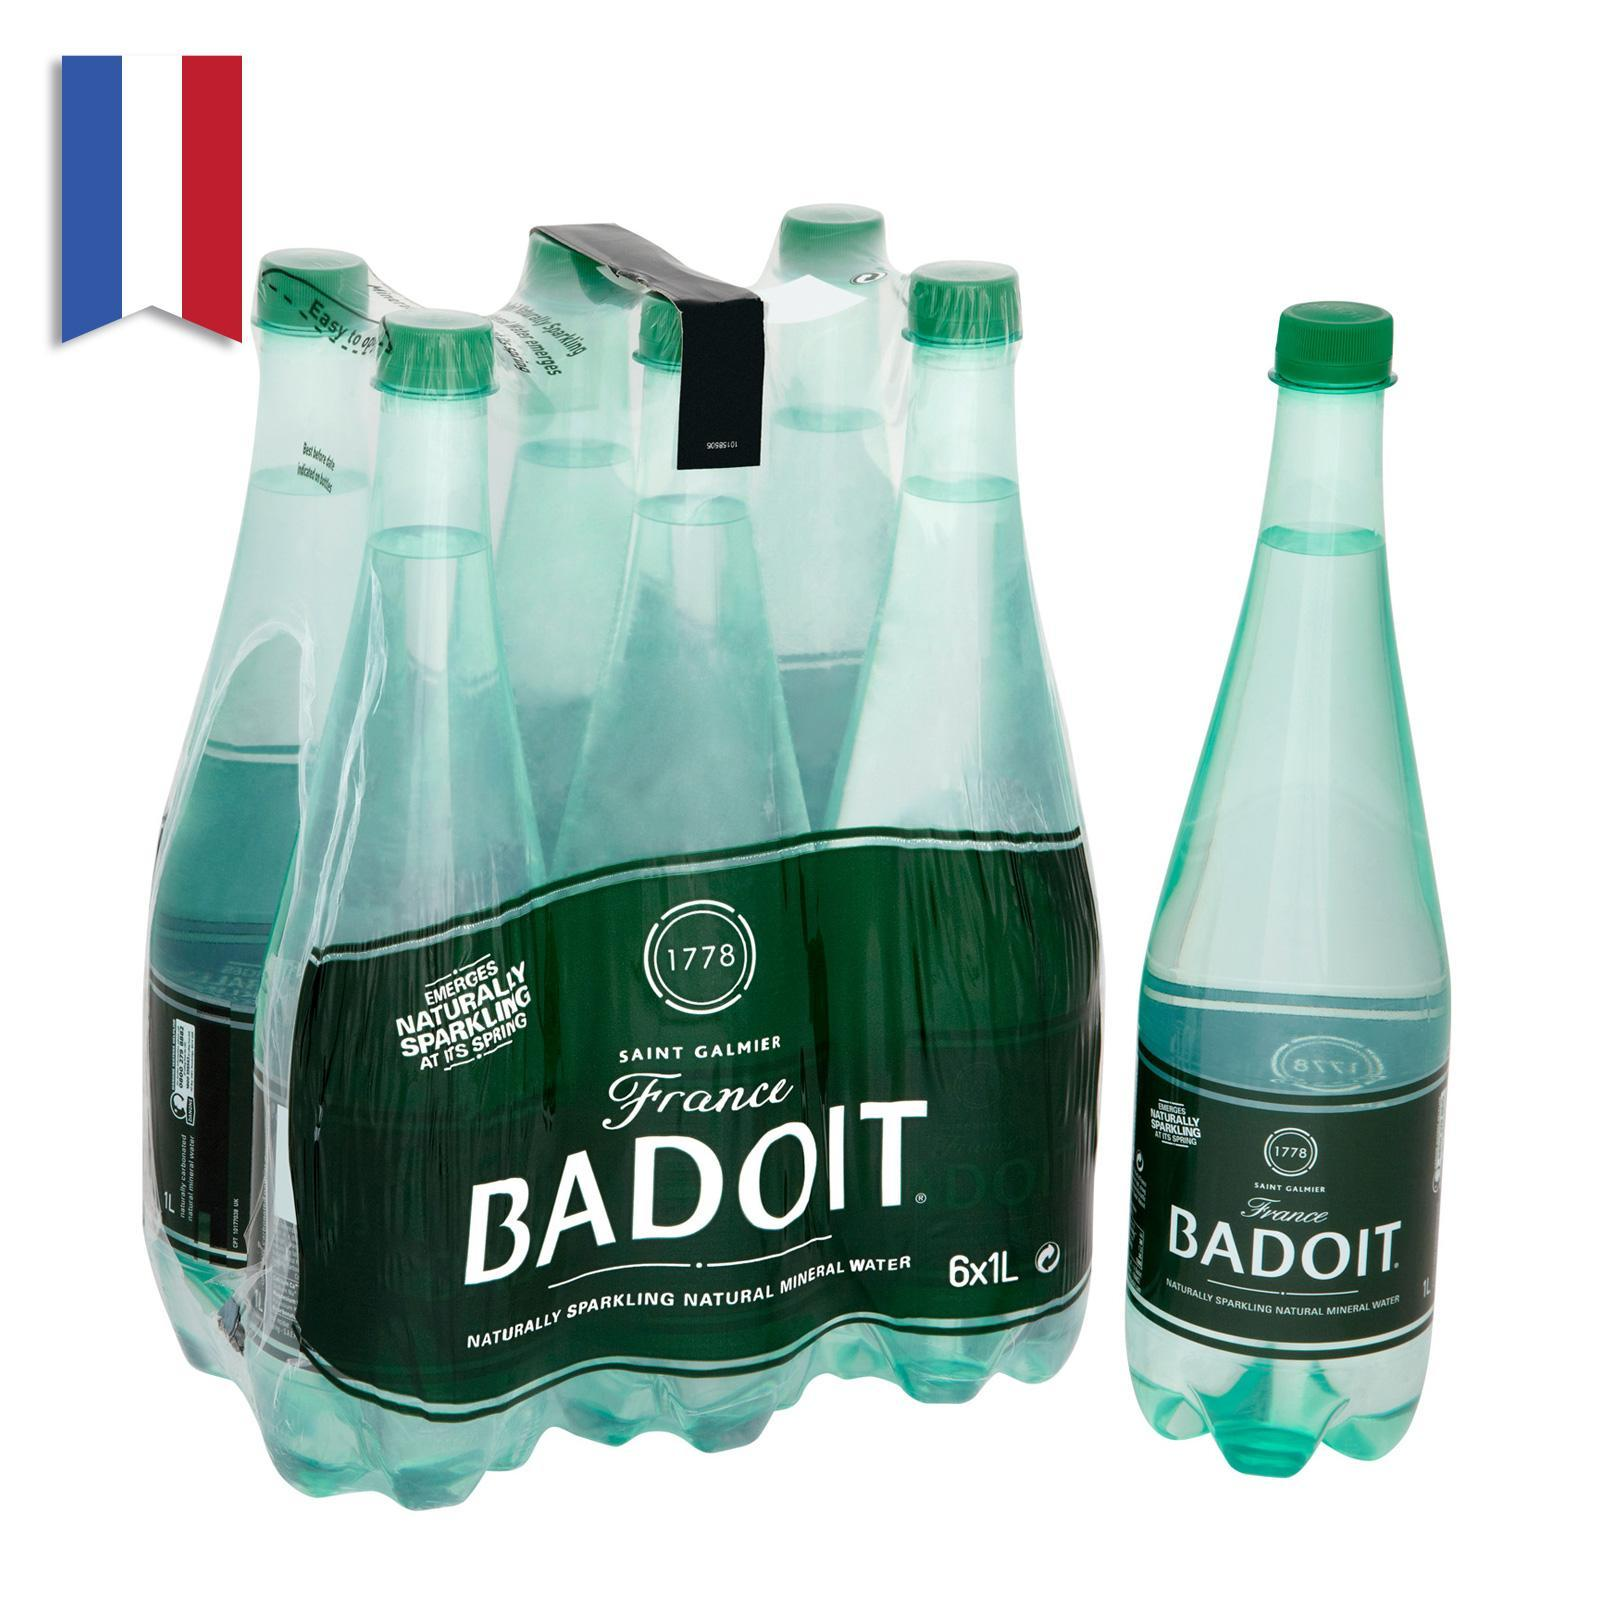 Badoit Sparkling Natural Mineral Water Case By Redmart.